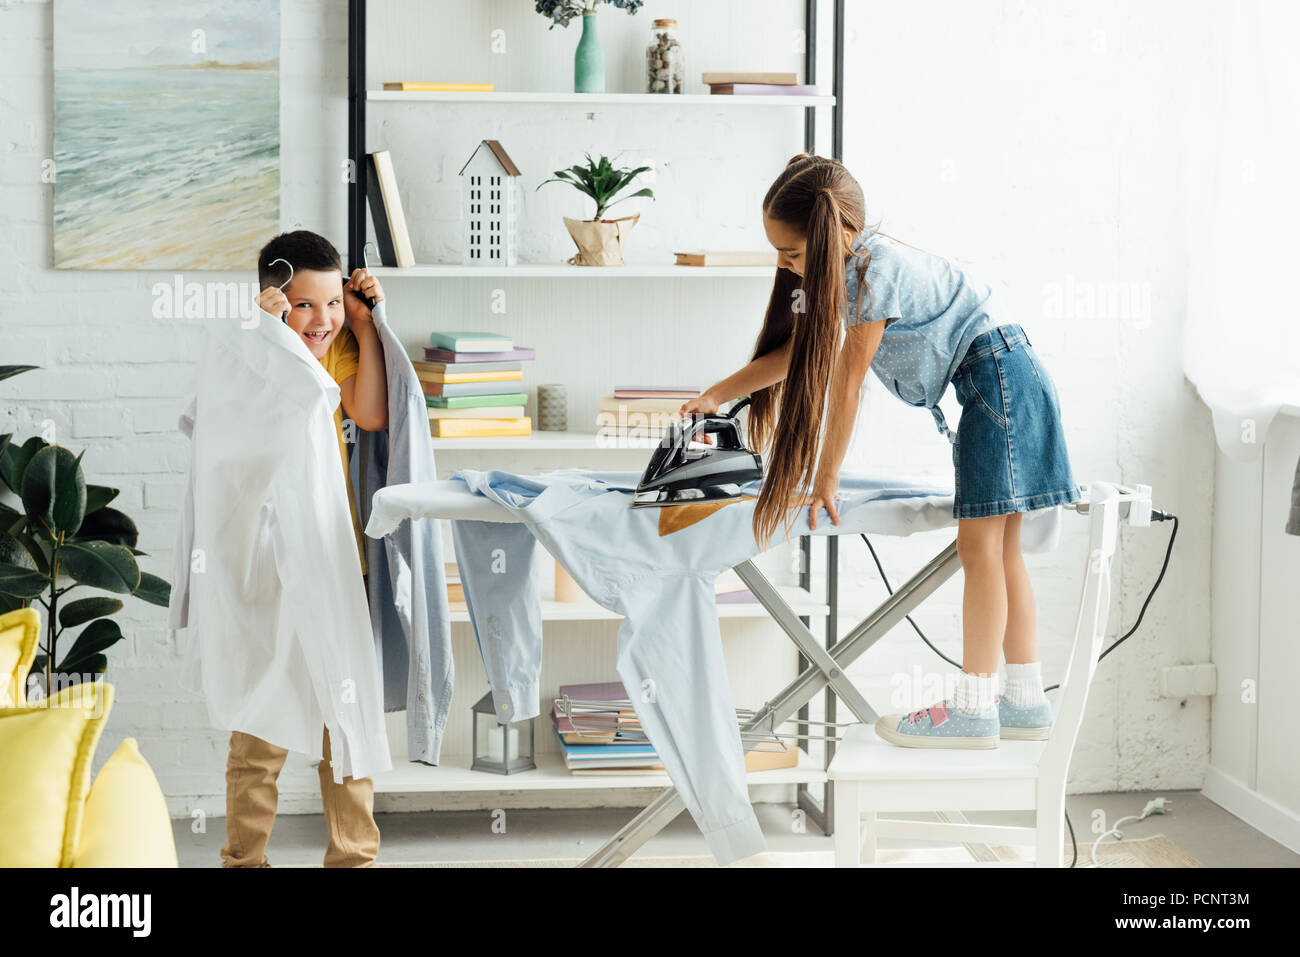 disobedient siblings ironing clothes at home - Stock Image